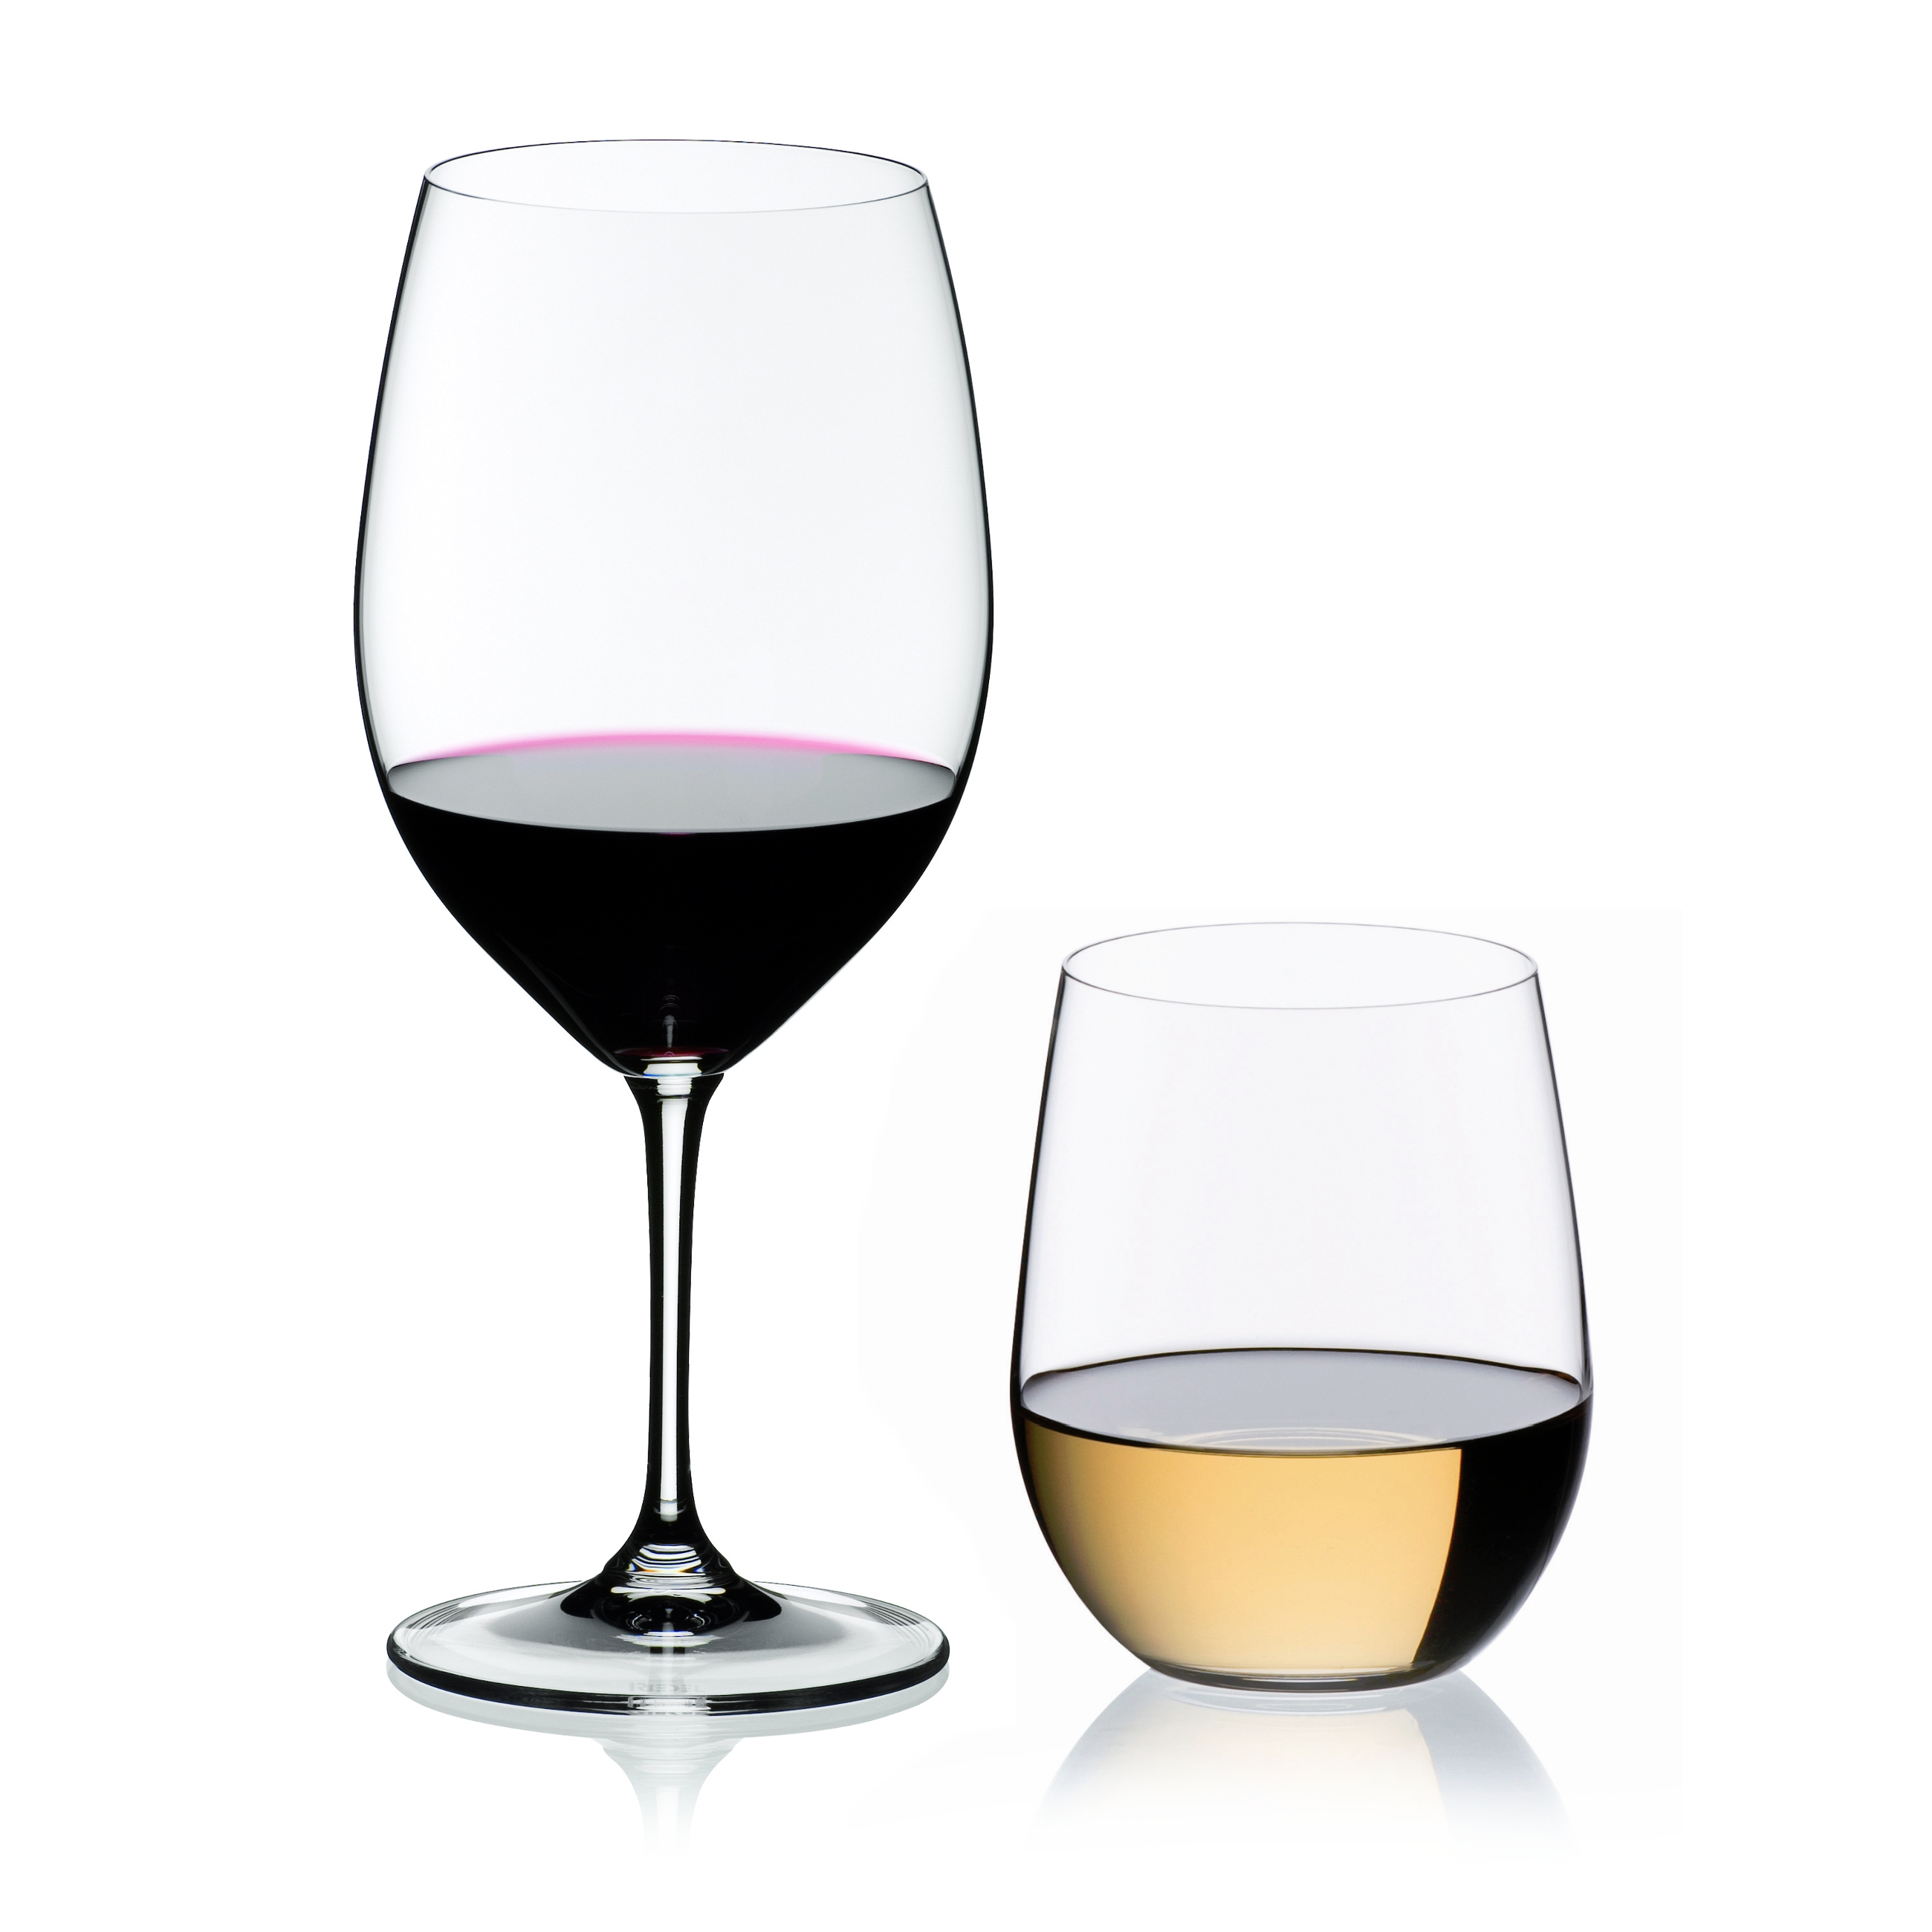 Riedel Vinum XL Leaded Crystal Cabernet and O Viognier Wine Glass Set, Buy 2 Get 4